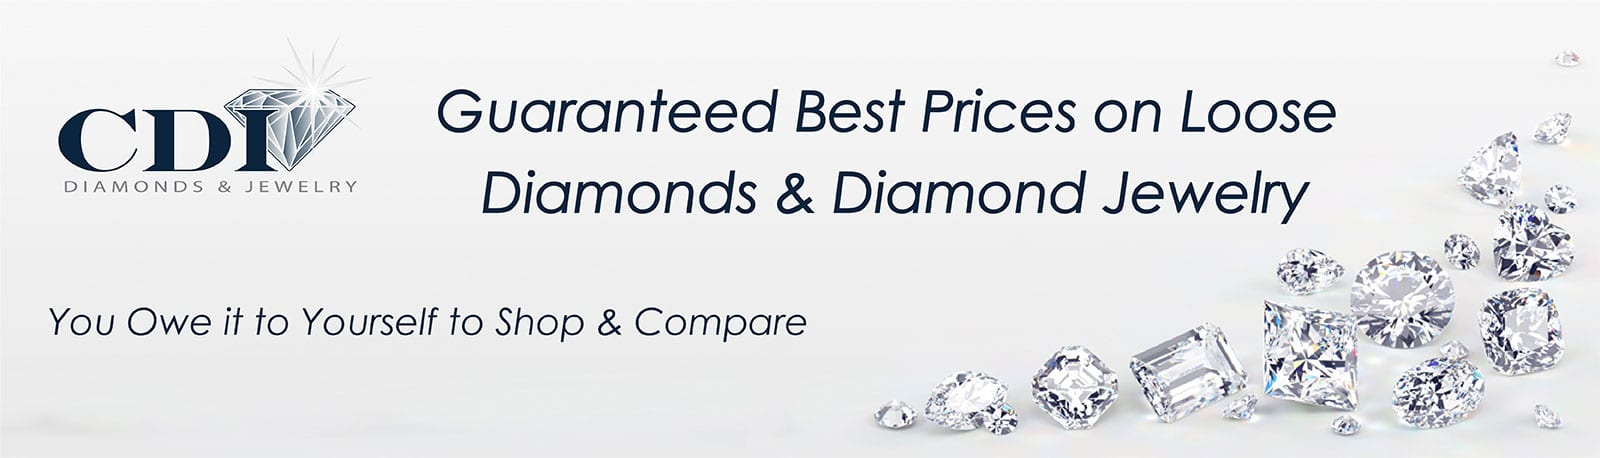 Guaranteed Best Prices on Loose Diamonds & Diamond Jewelry